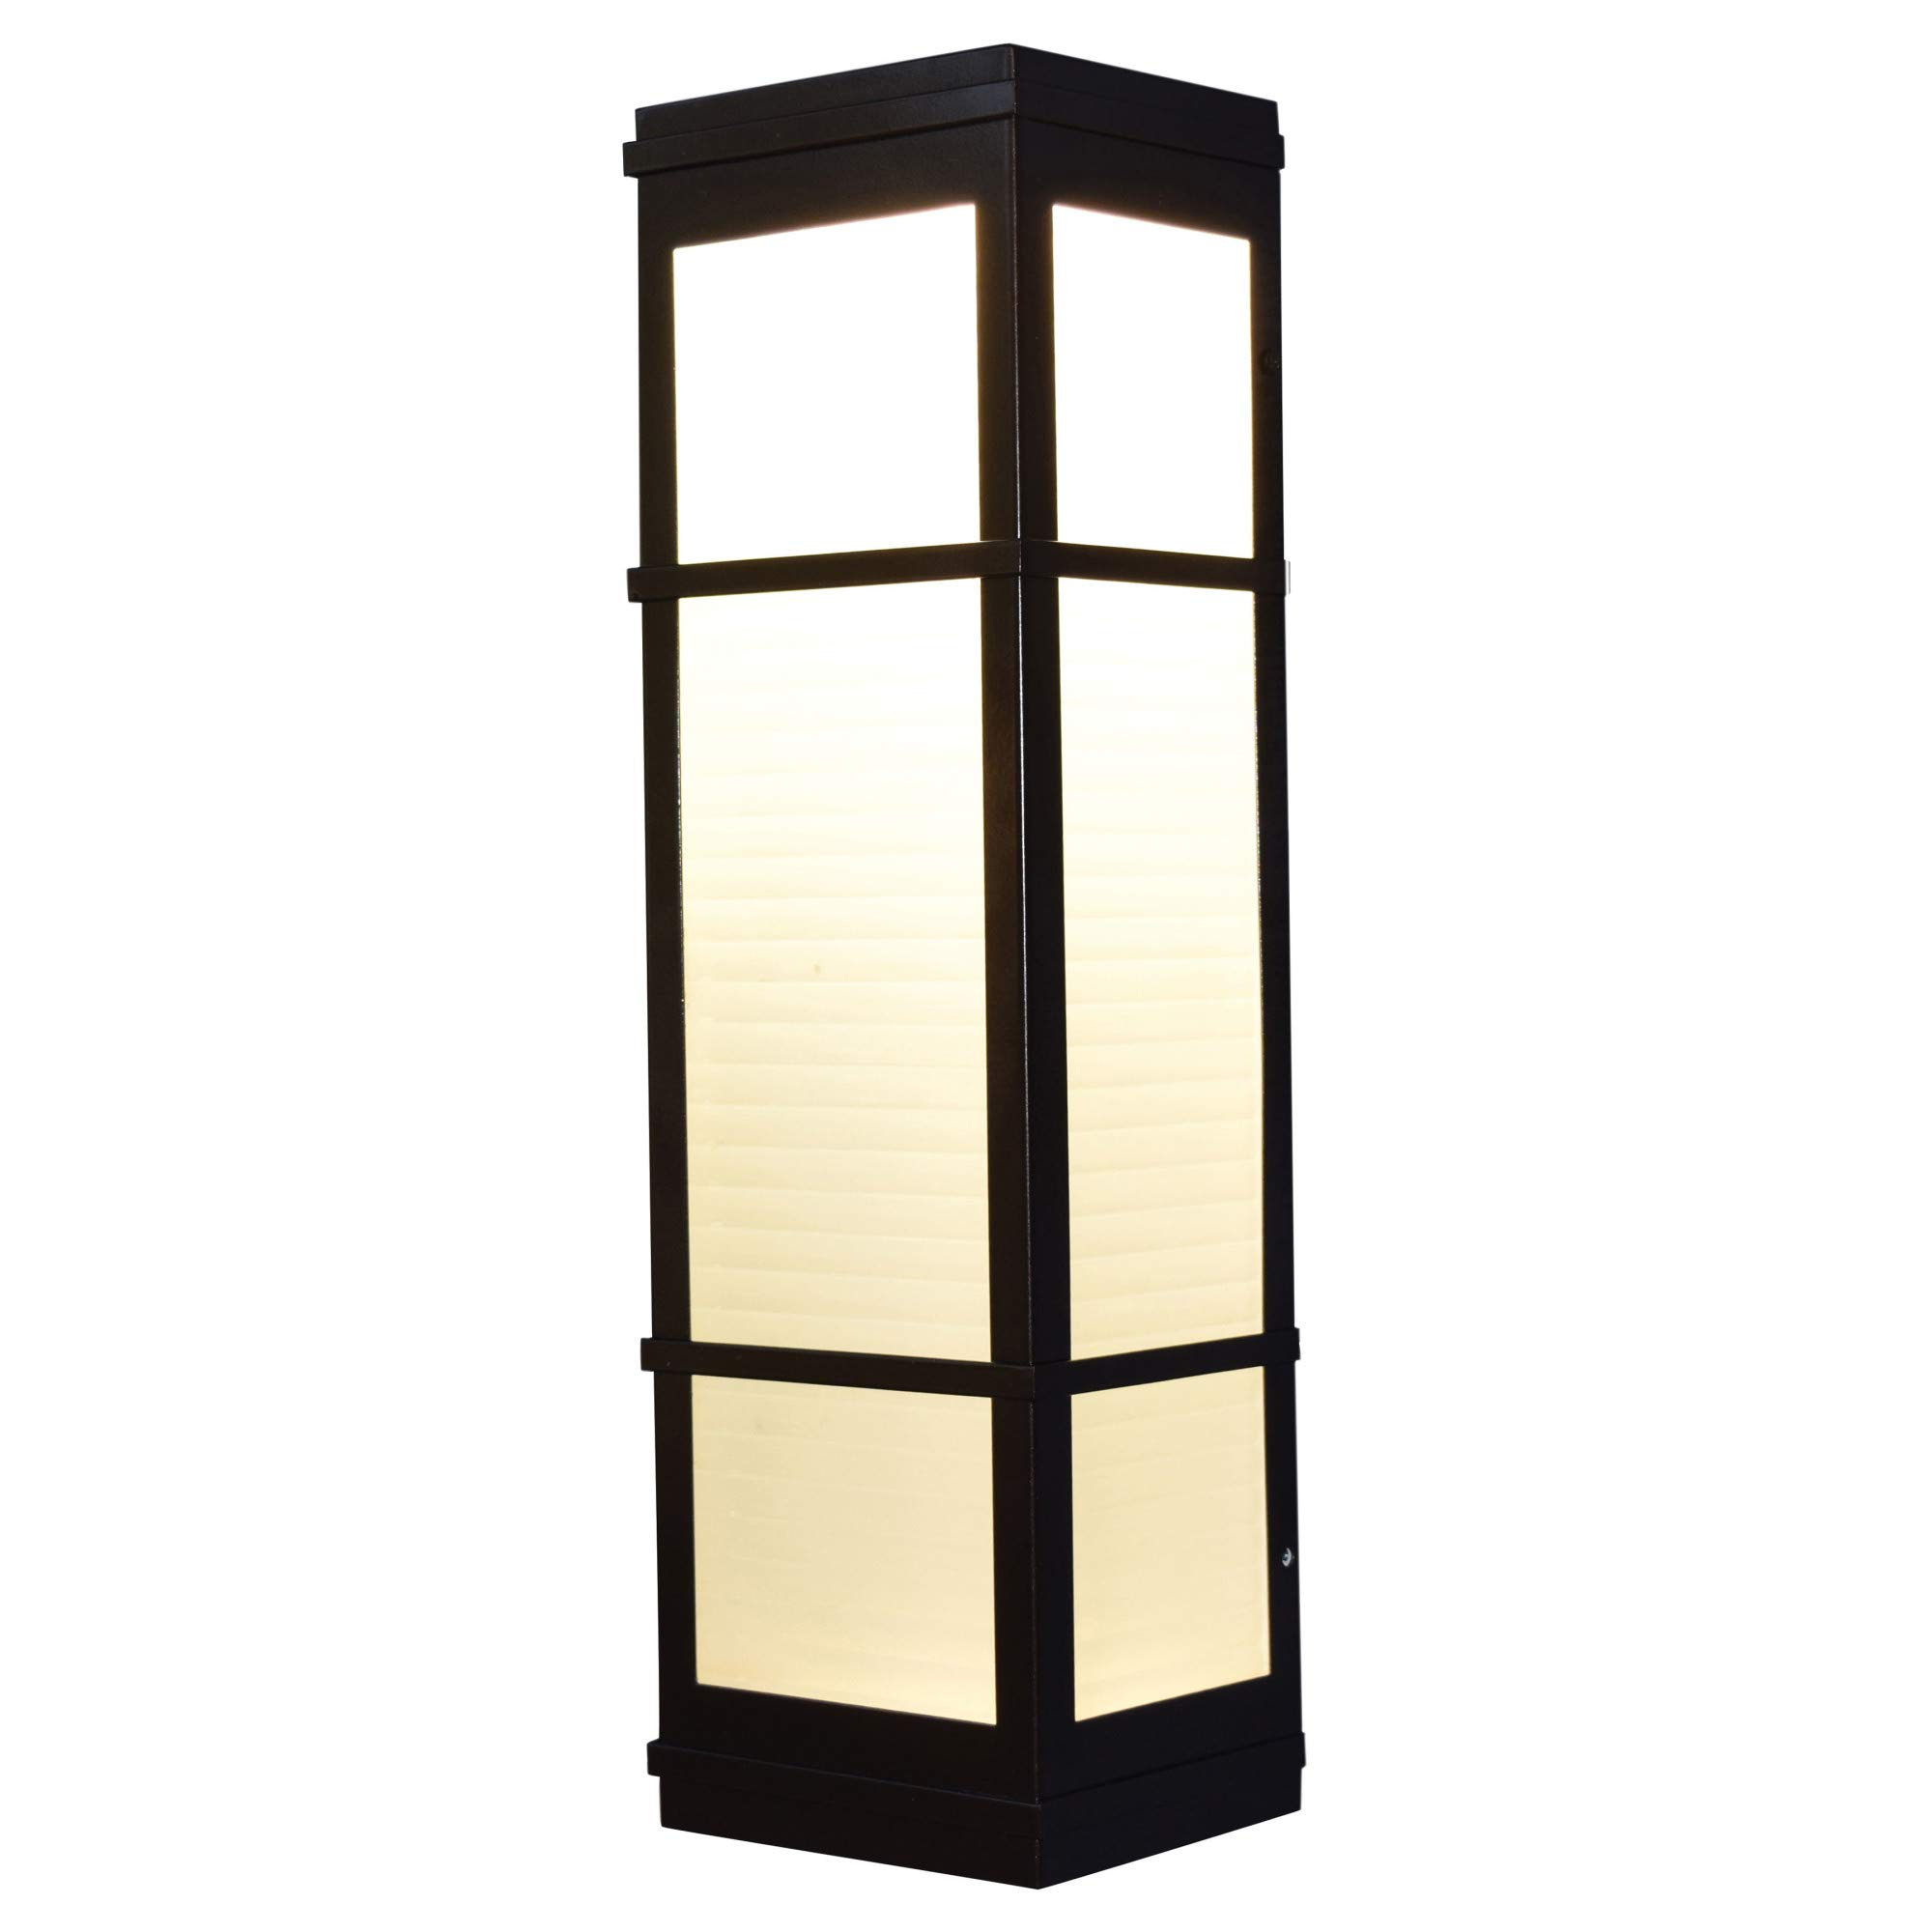 Access Lighting Metropolis 16'' LED Outdoor Wall Fixture - Bronze Finish with Ribbed Frosted Glass Shade